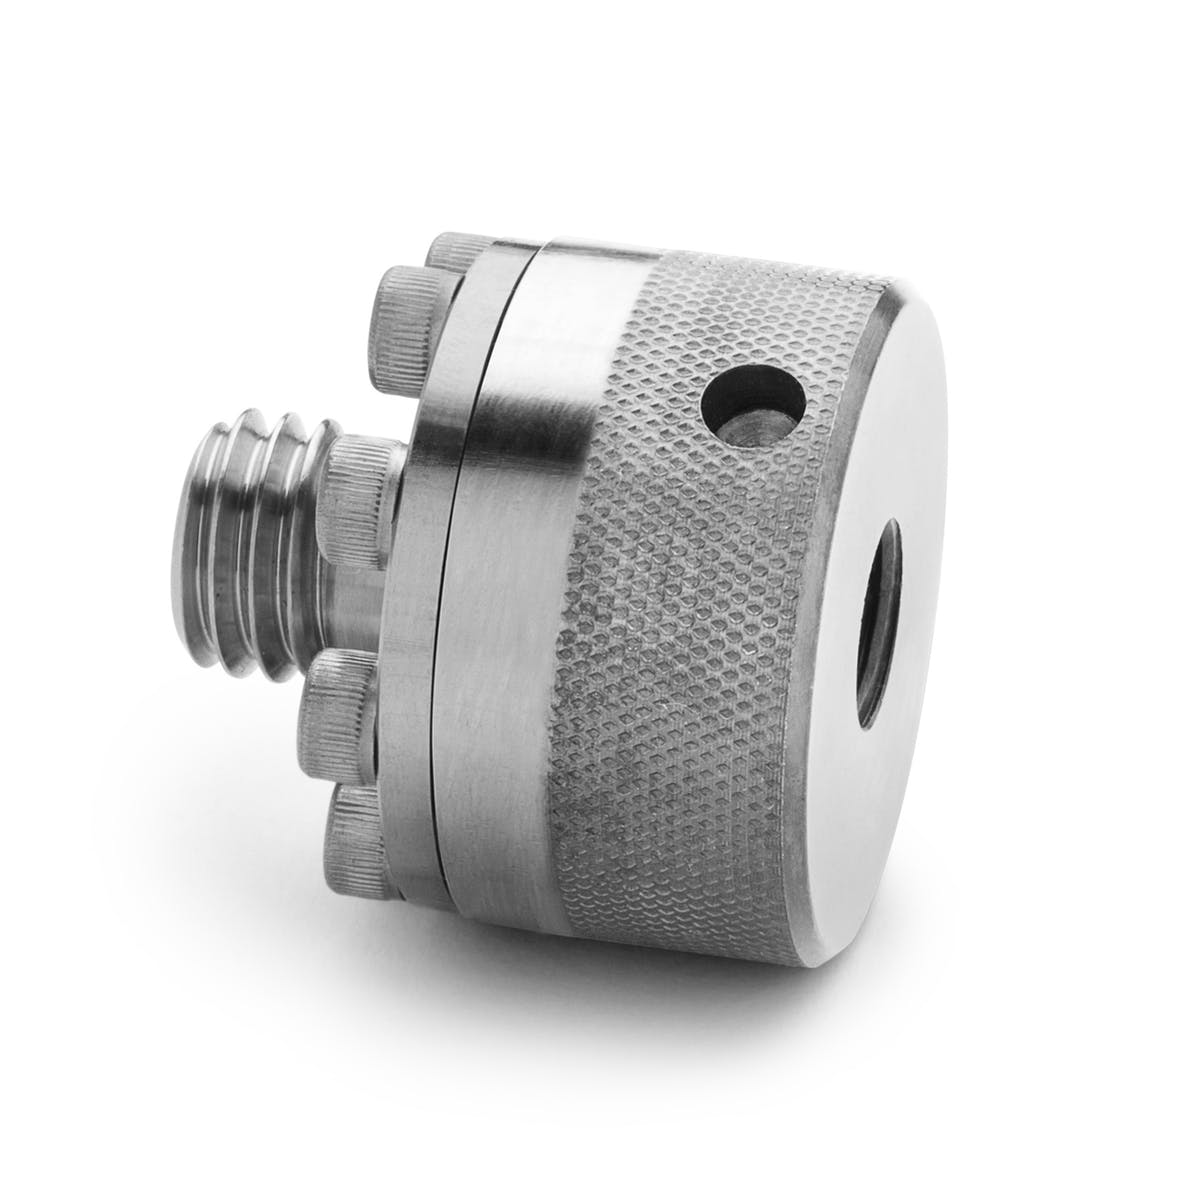 Ralston Quick-test Straight Adapters & Test Point Fittings